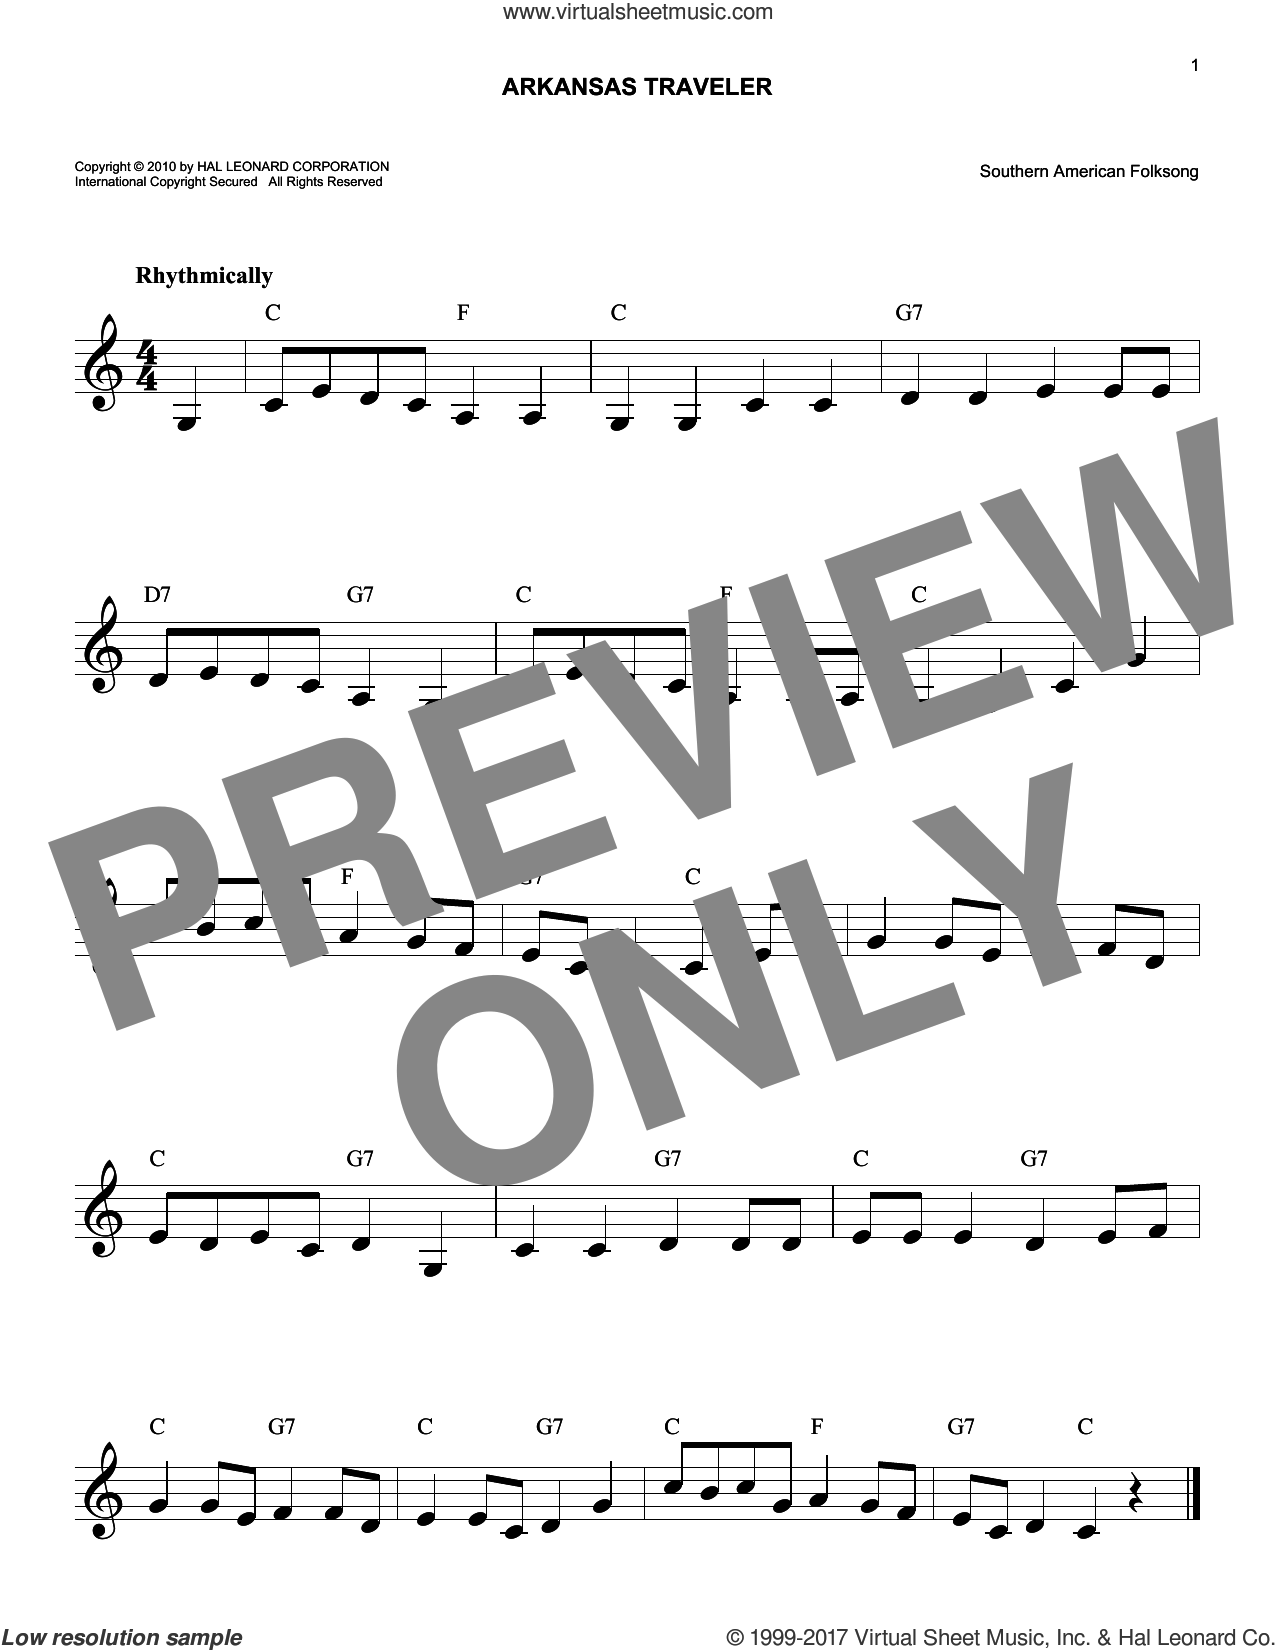 Arkansas Traveler sheet music for voice and other instruments (fake book), intermediate skill level